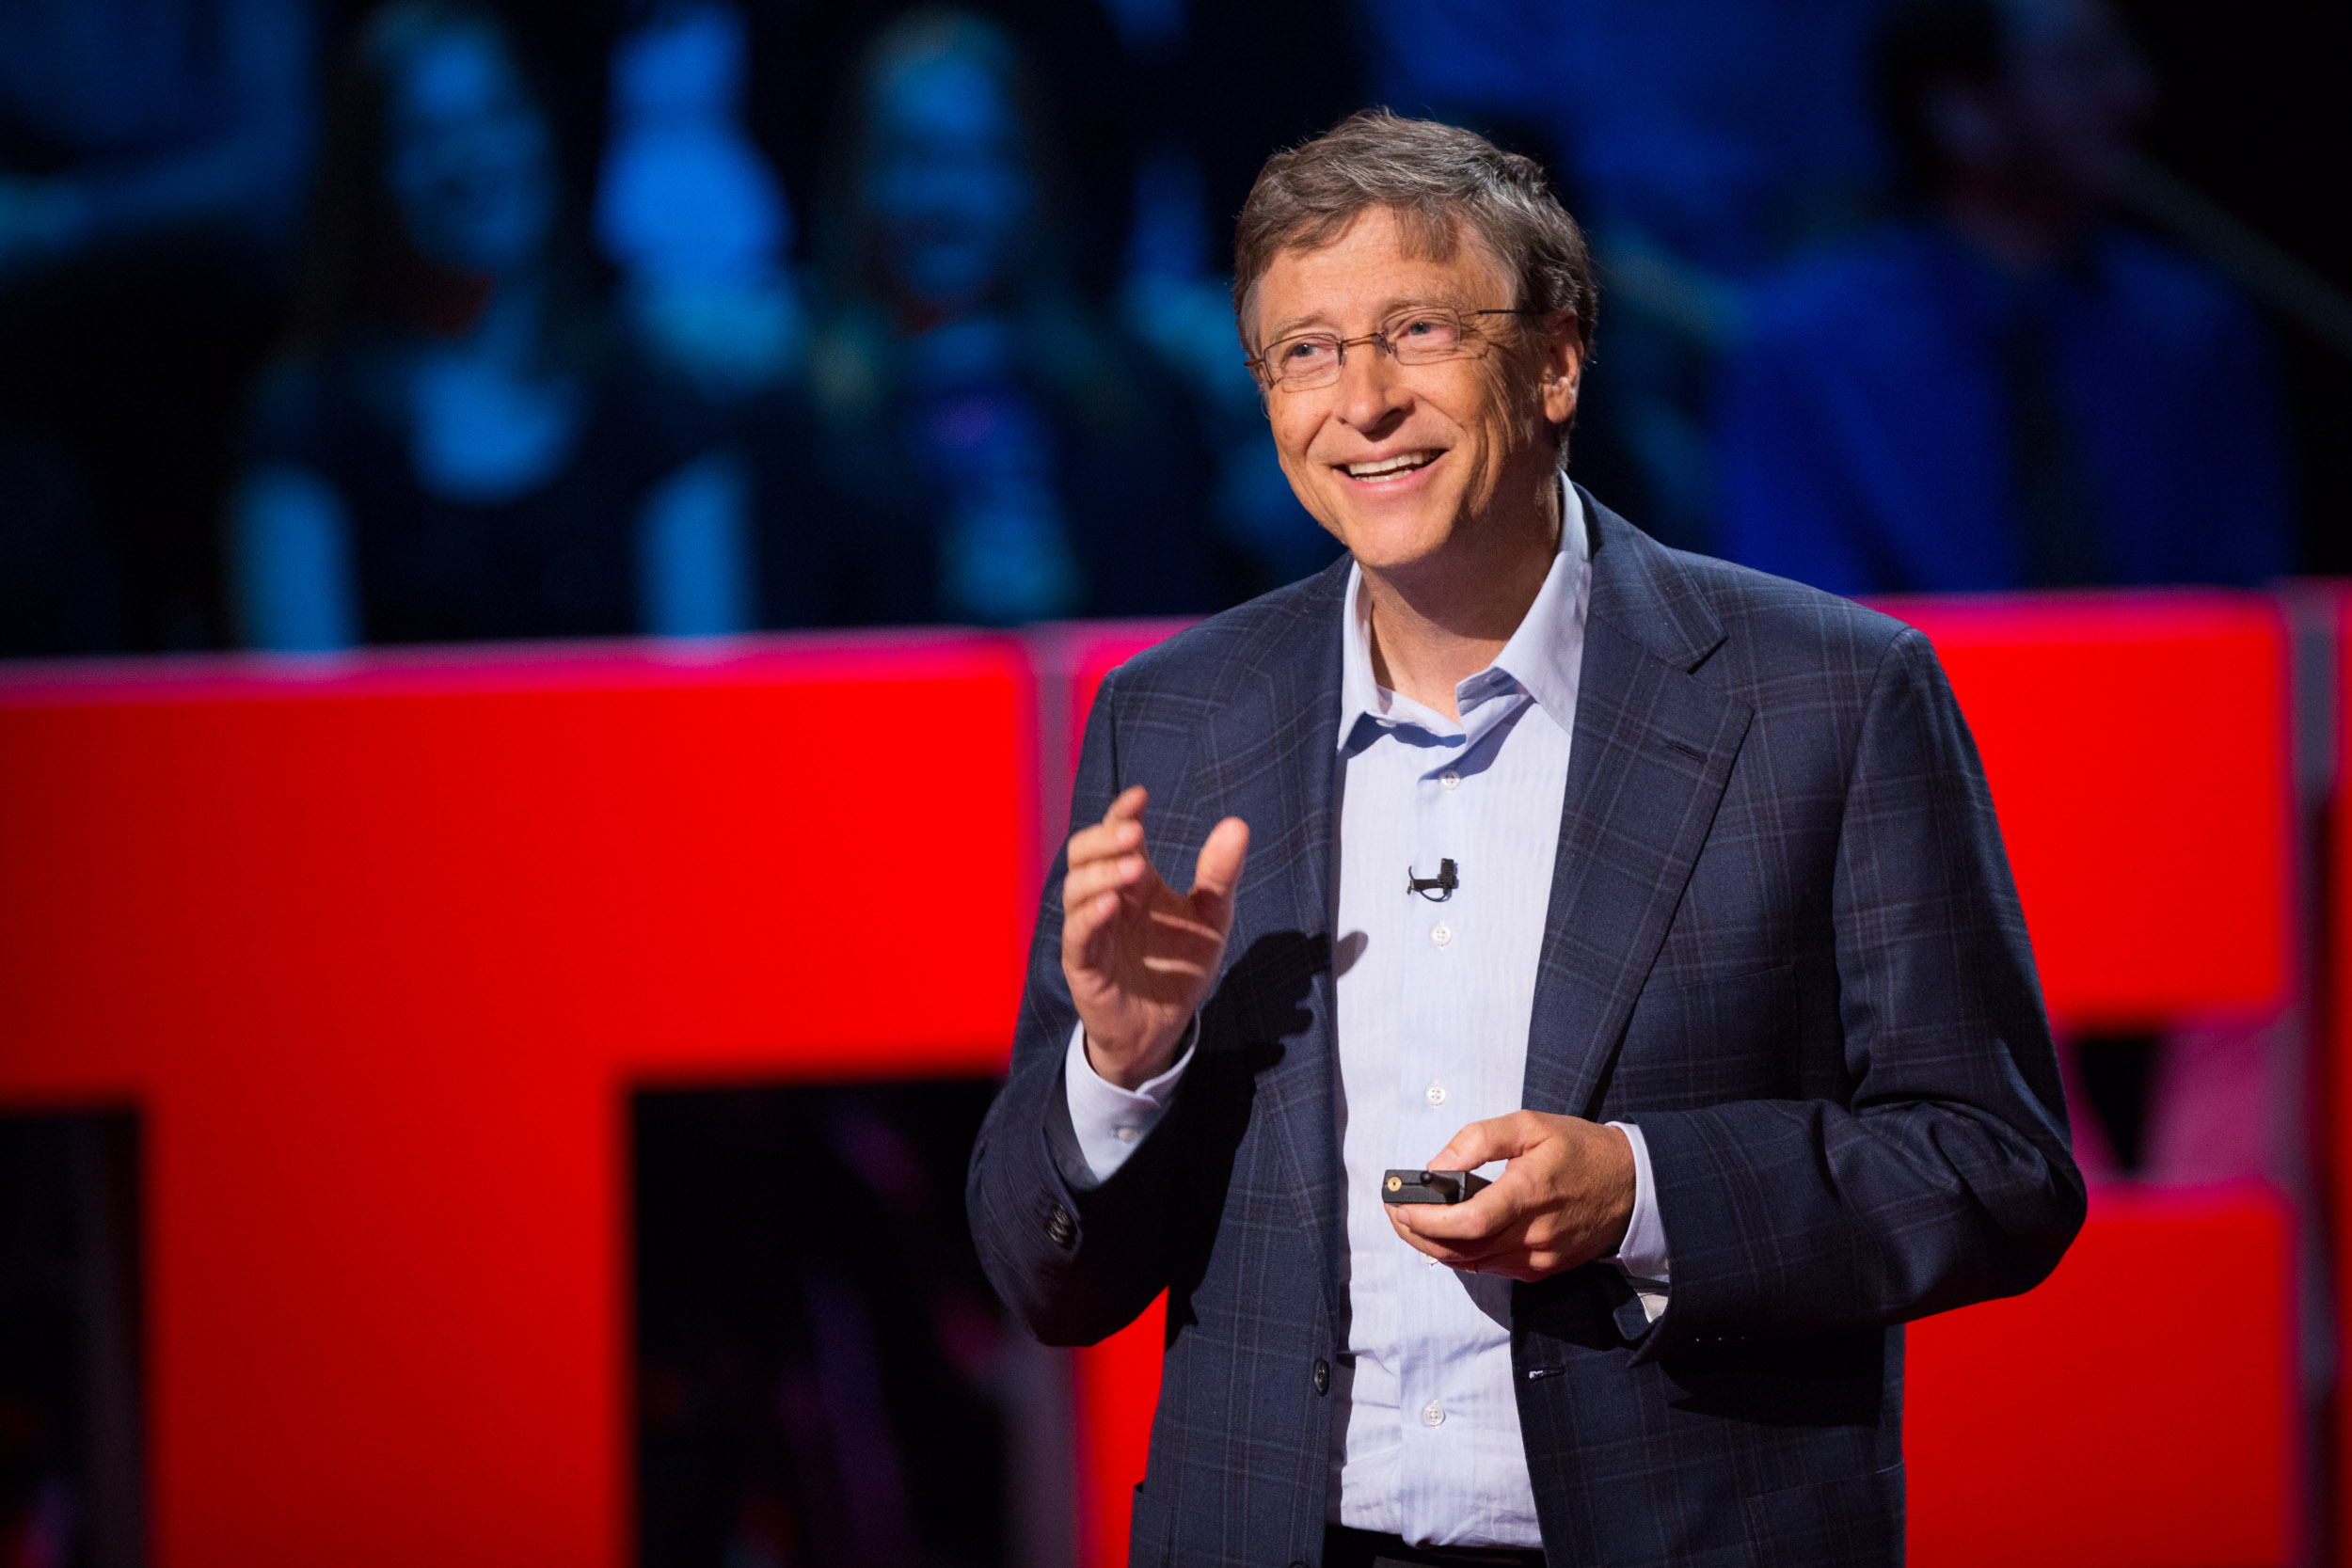 """bill gates speech The prize for misattribution, however, has to go to the atlanta journal and constitution, which published the list twice in the space of three weeks in mid-2000, the first time crediting it to """"duluth state rep brooks coleman of duluth,"""" and the second time to bill gates."""